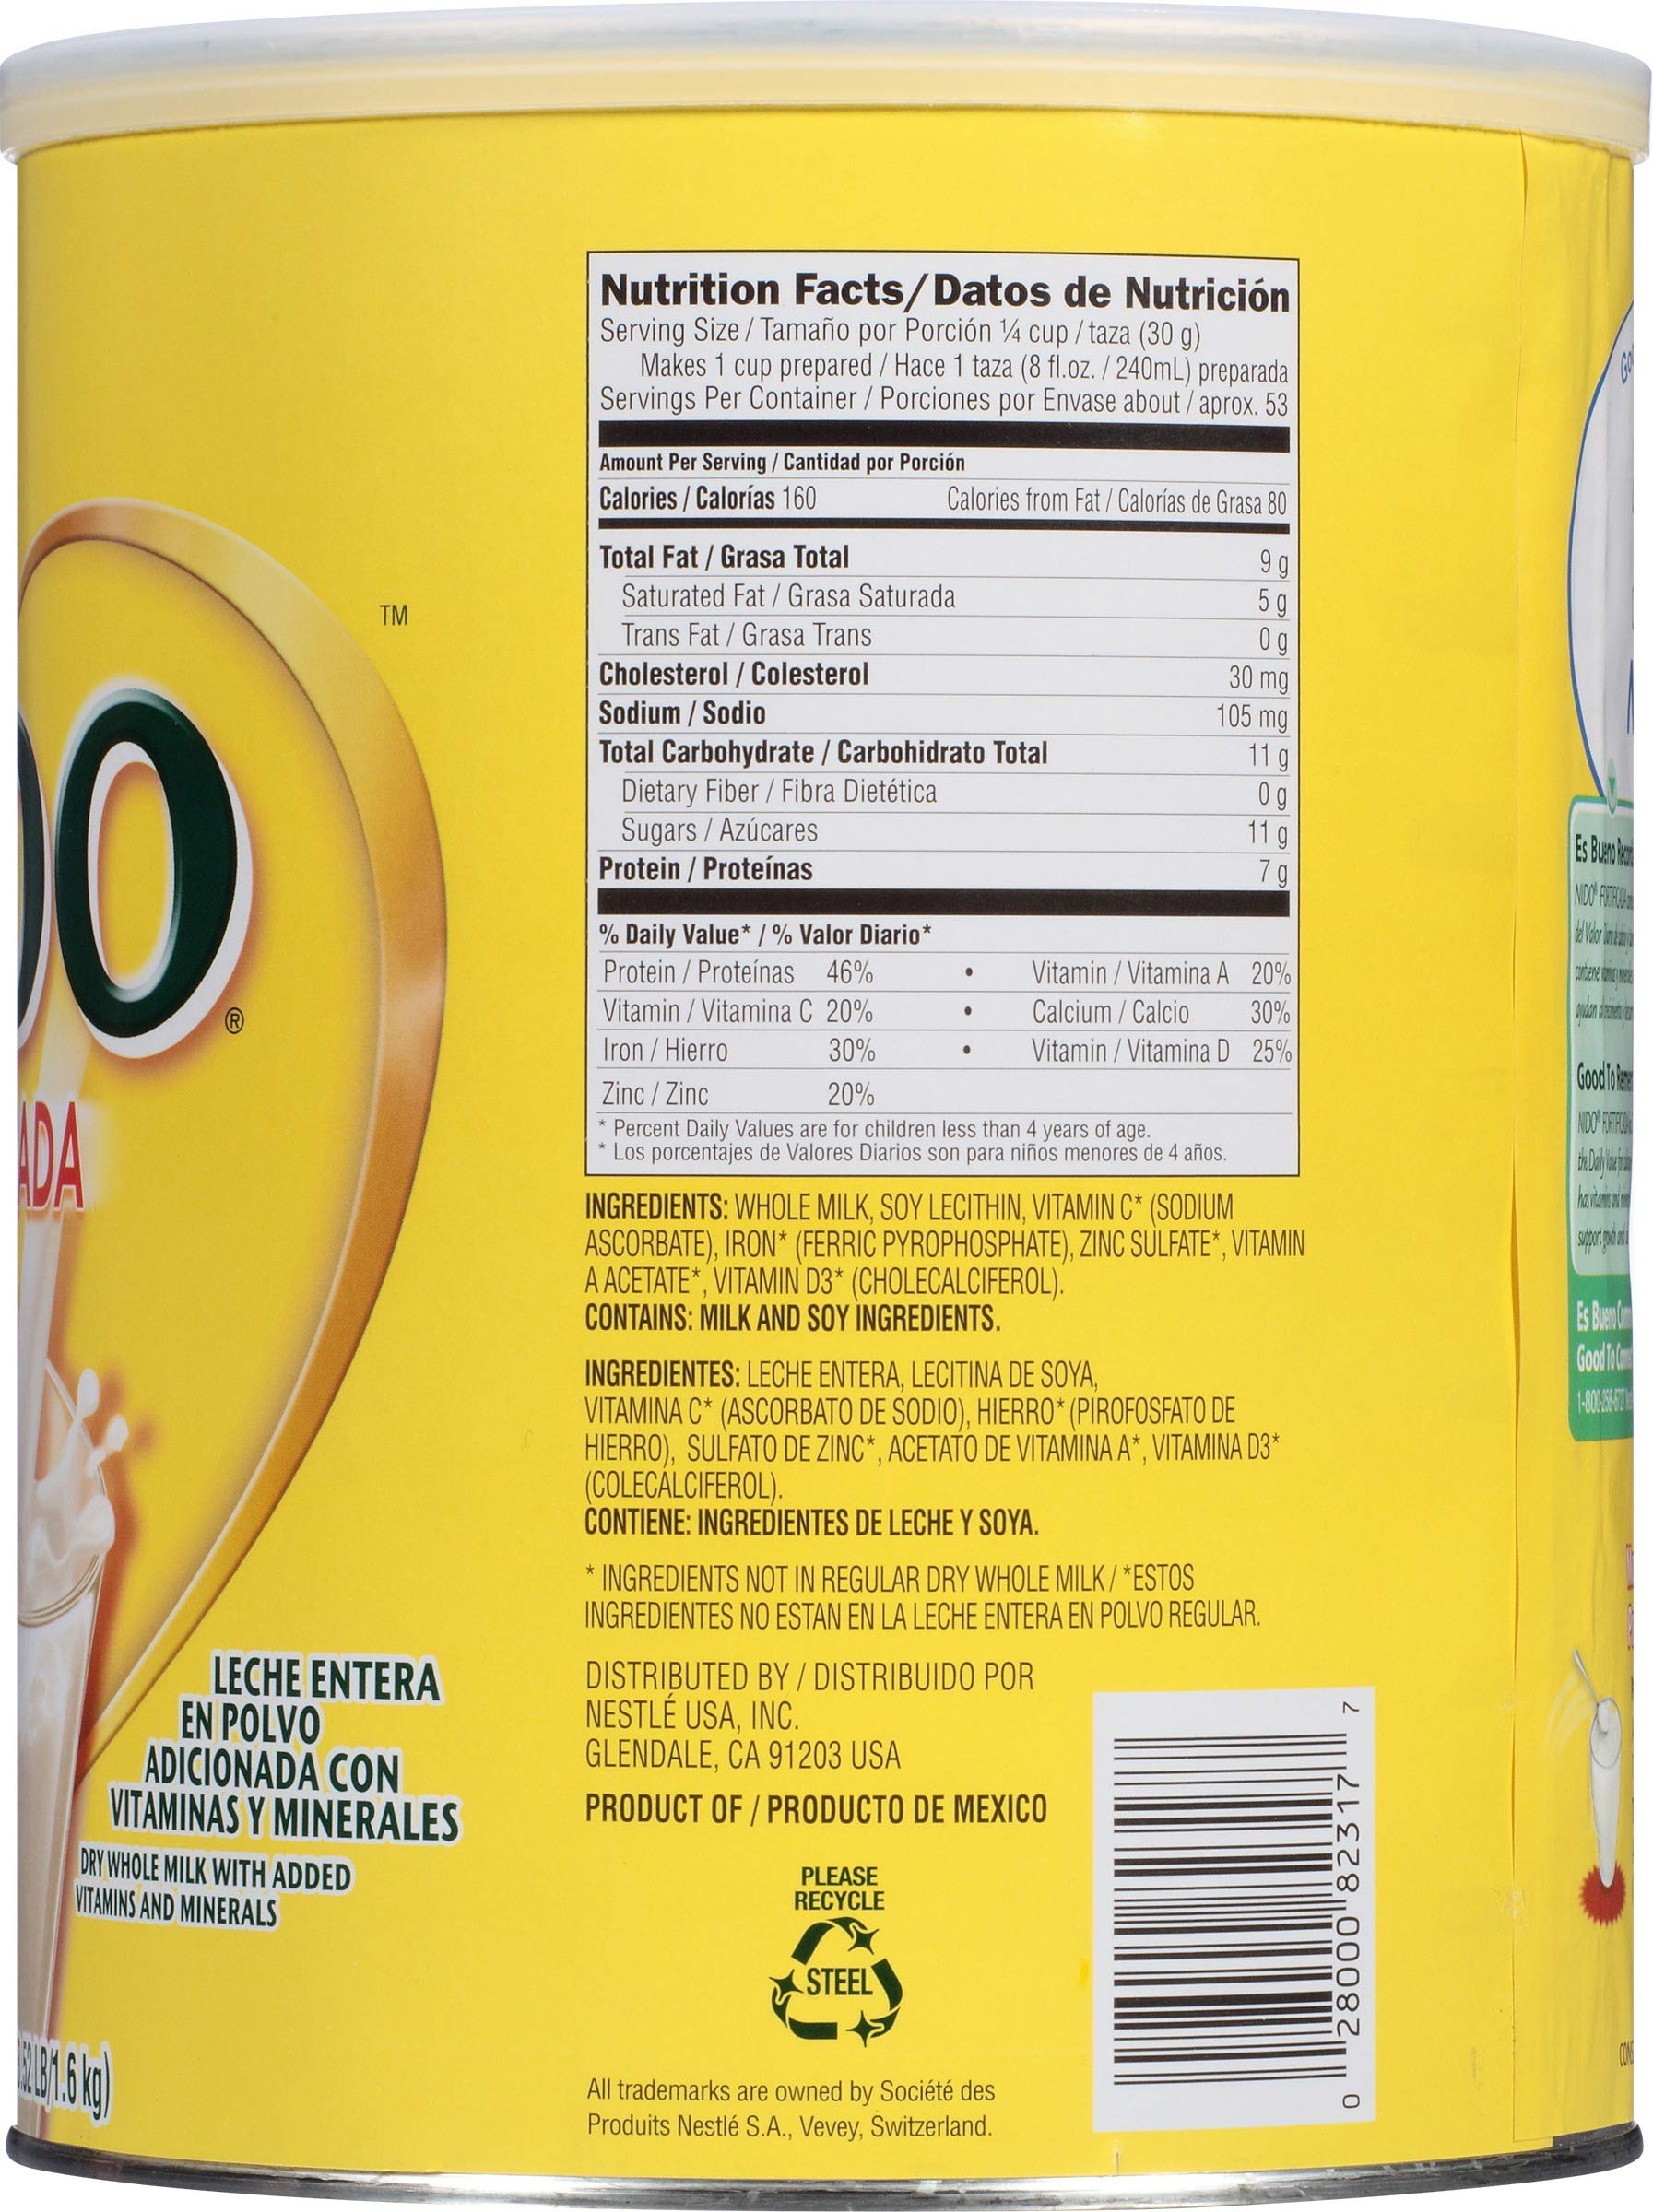 NIDO Fortificada Dry Milk 56.3 oz. Canister, Pack of 4 by Nido (Image #4)